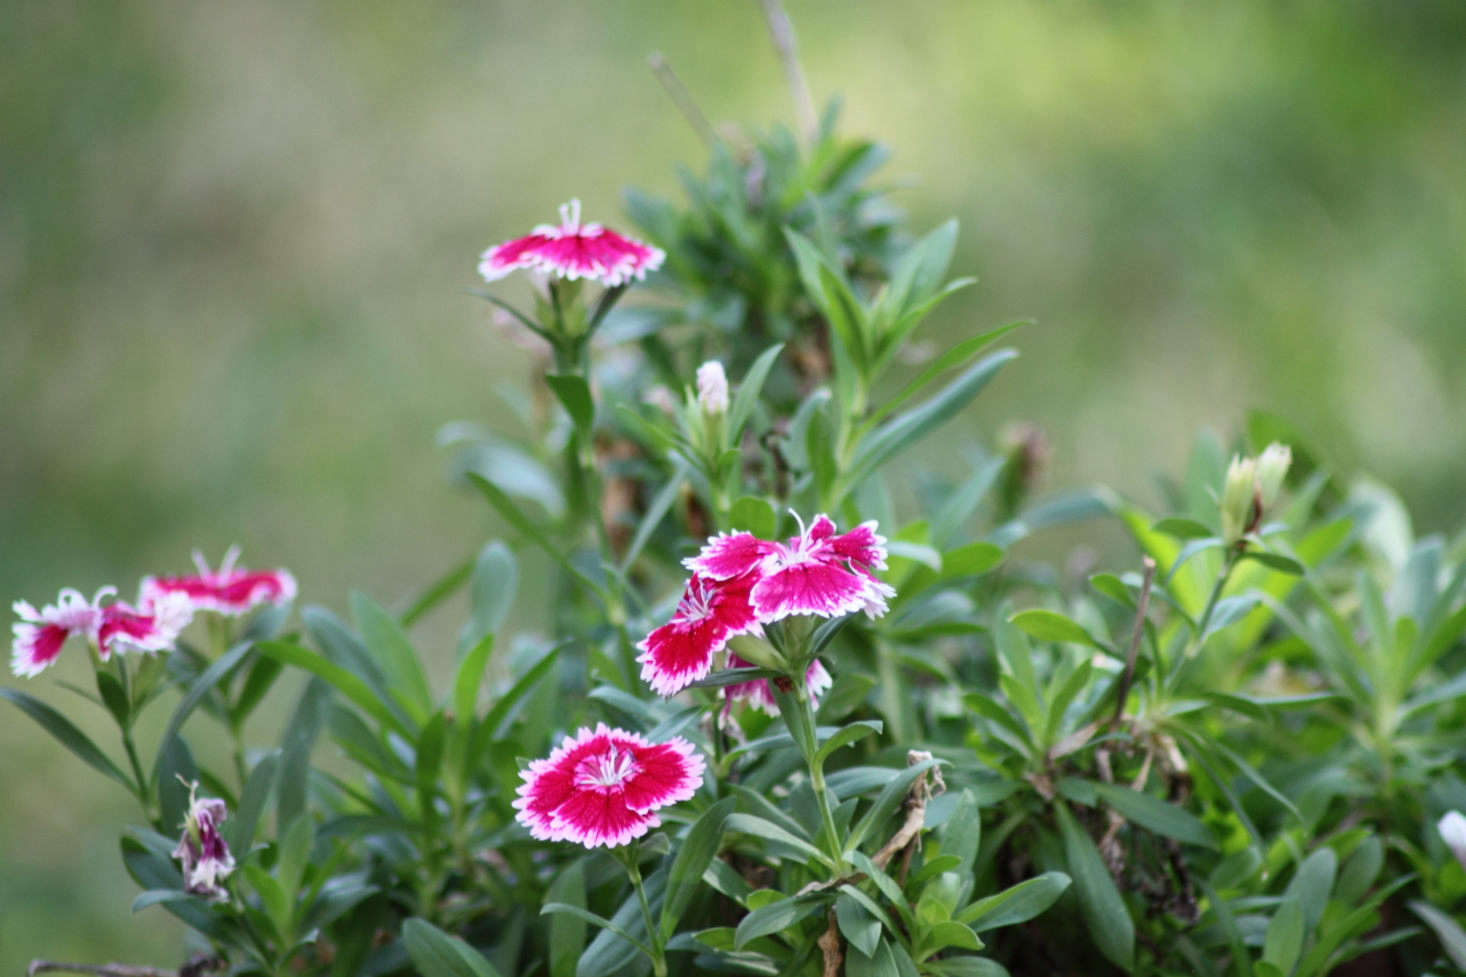 Dianthus chinensis, Photograph by A. Yee via Flickr.